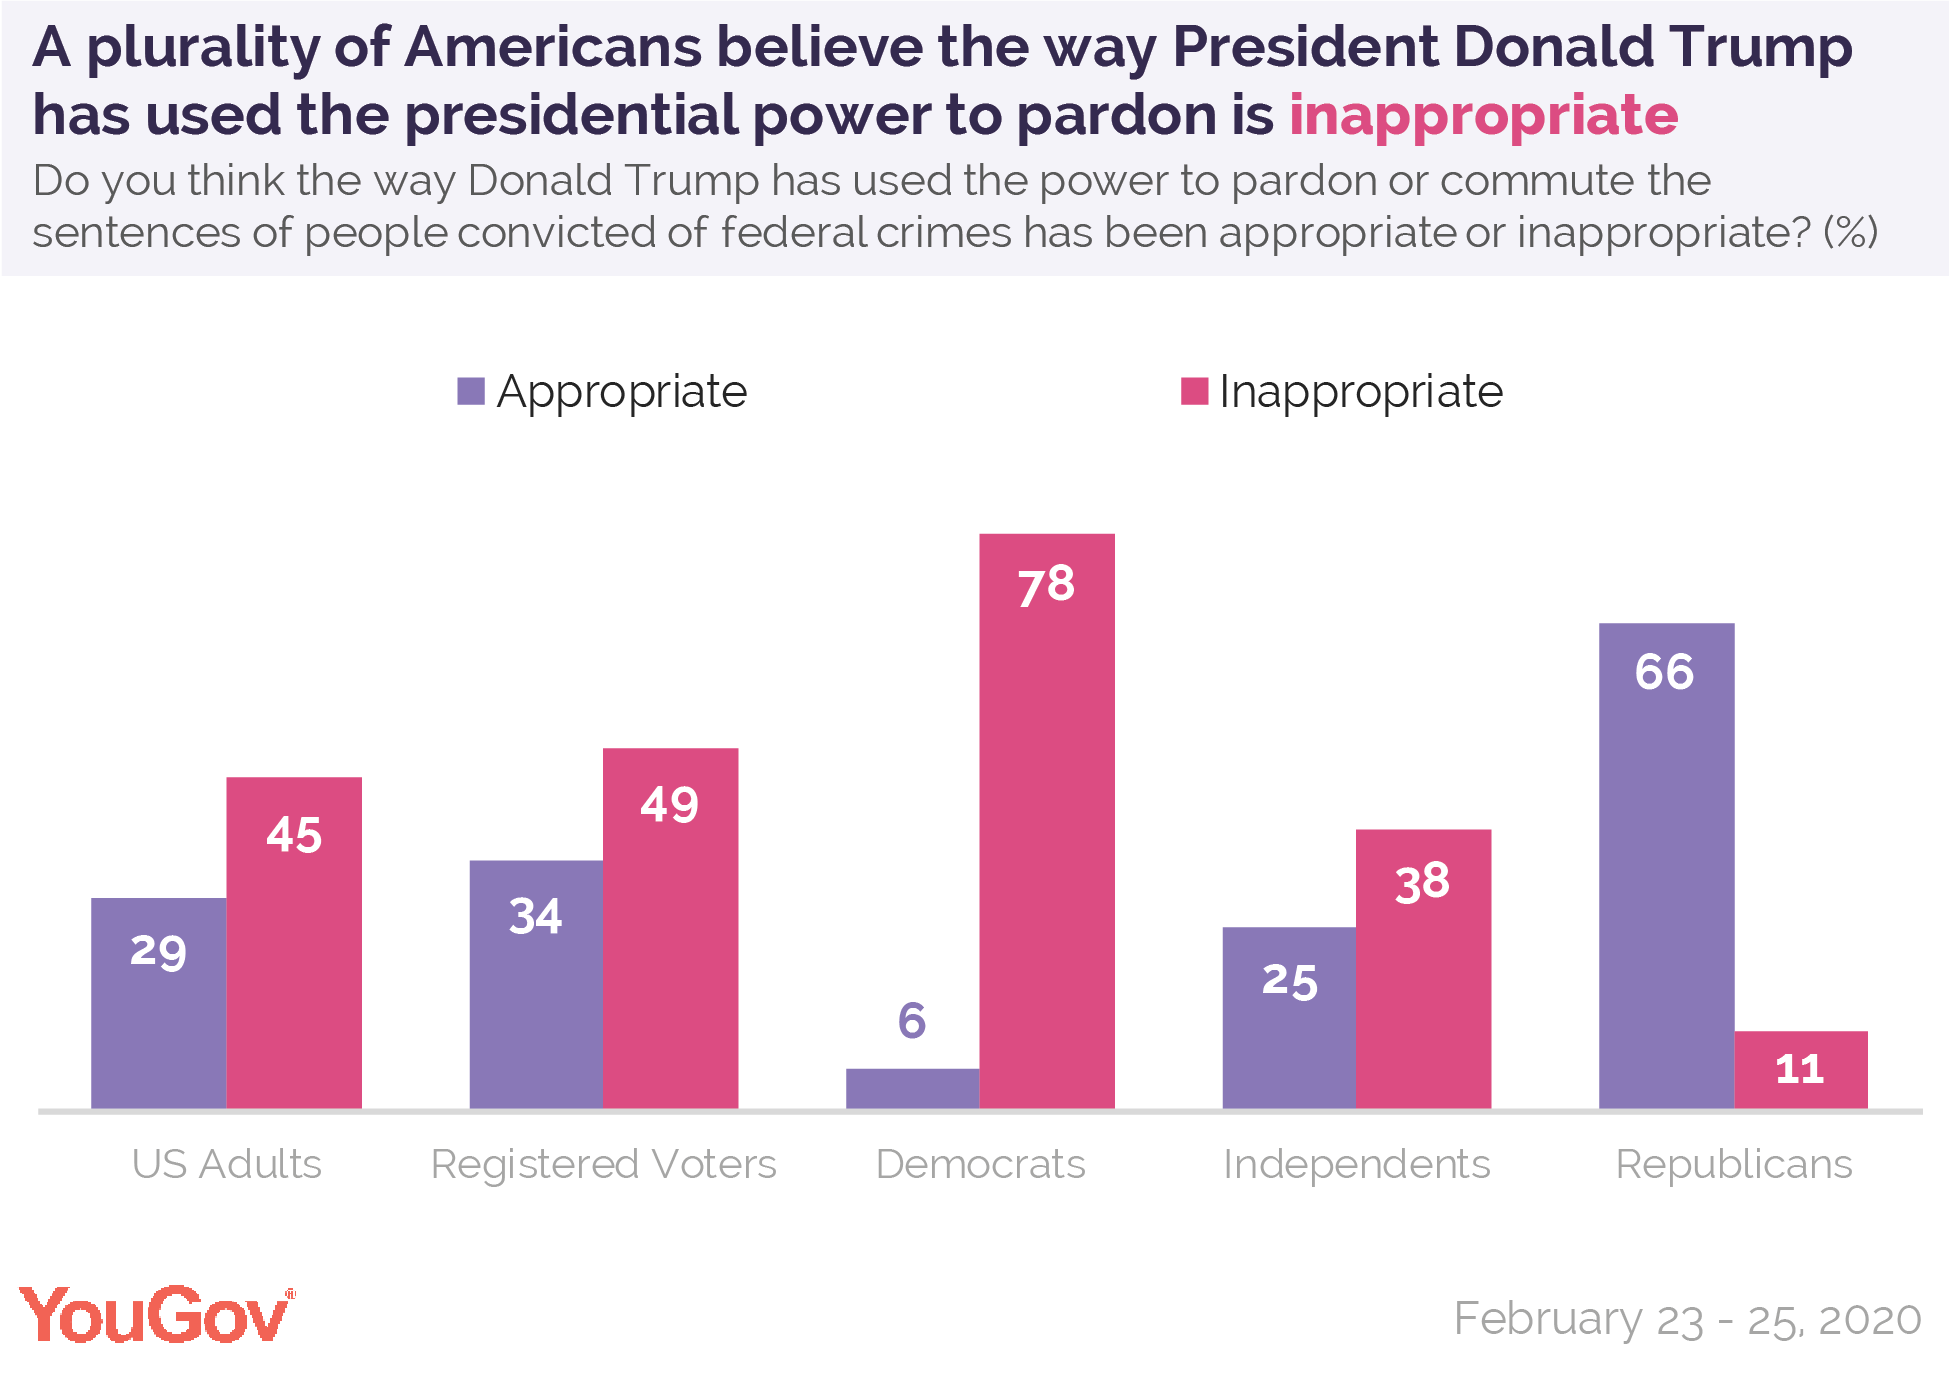 A plurality of Americans believe the way President Donald Trump has used the presidential power to pardon is inappropriate